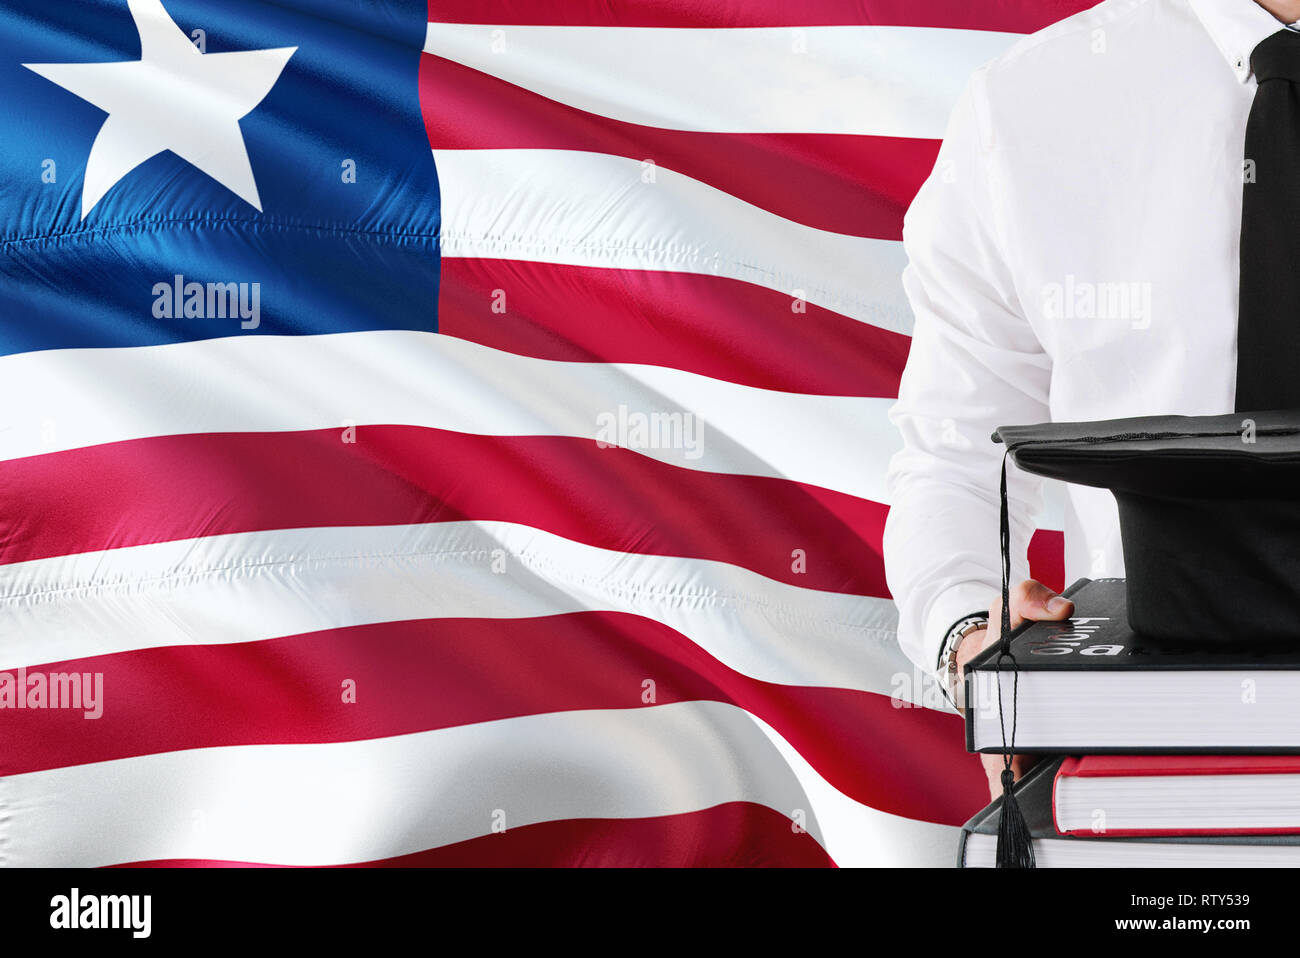 Successful Liberian student education concept. Holding books and graduation cap over Liberia flag background. - Stock Image